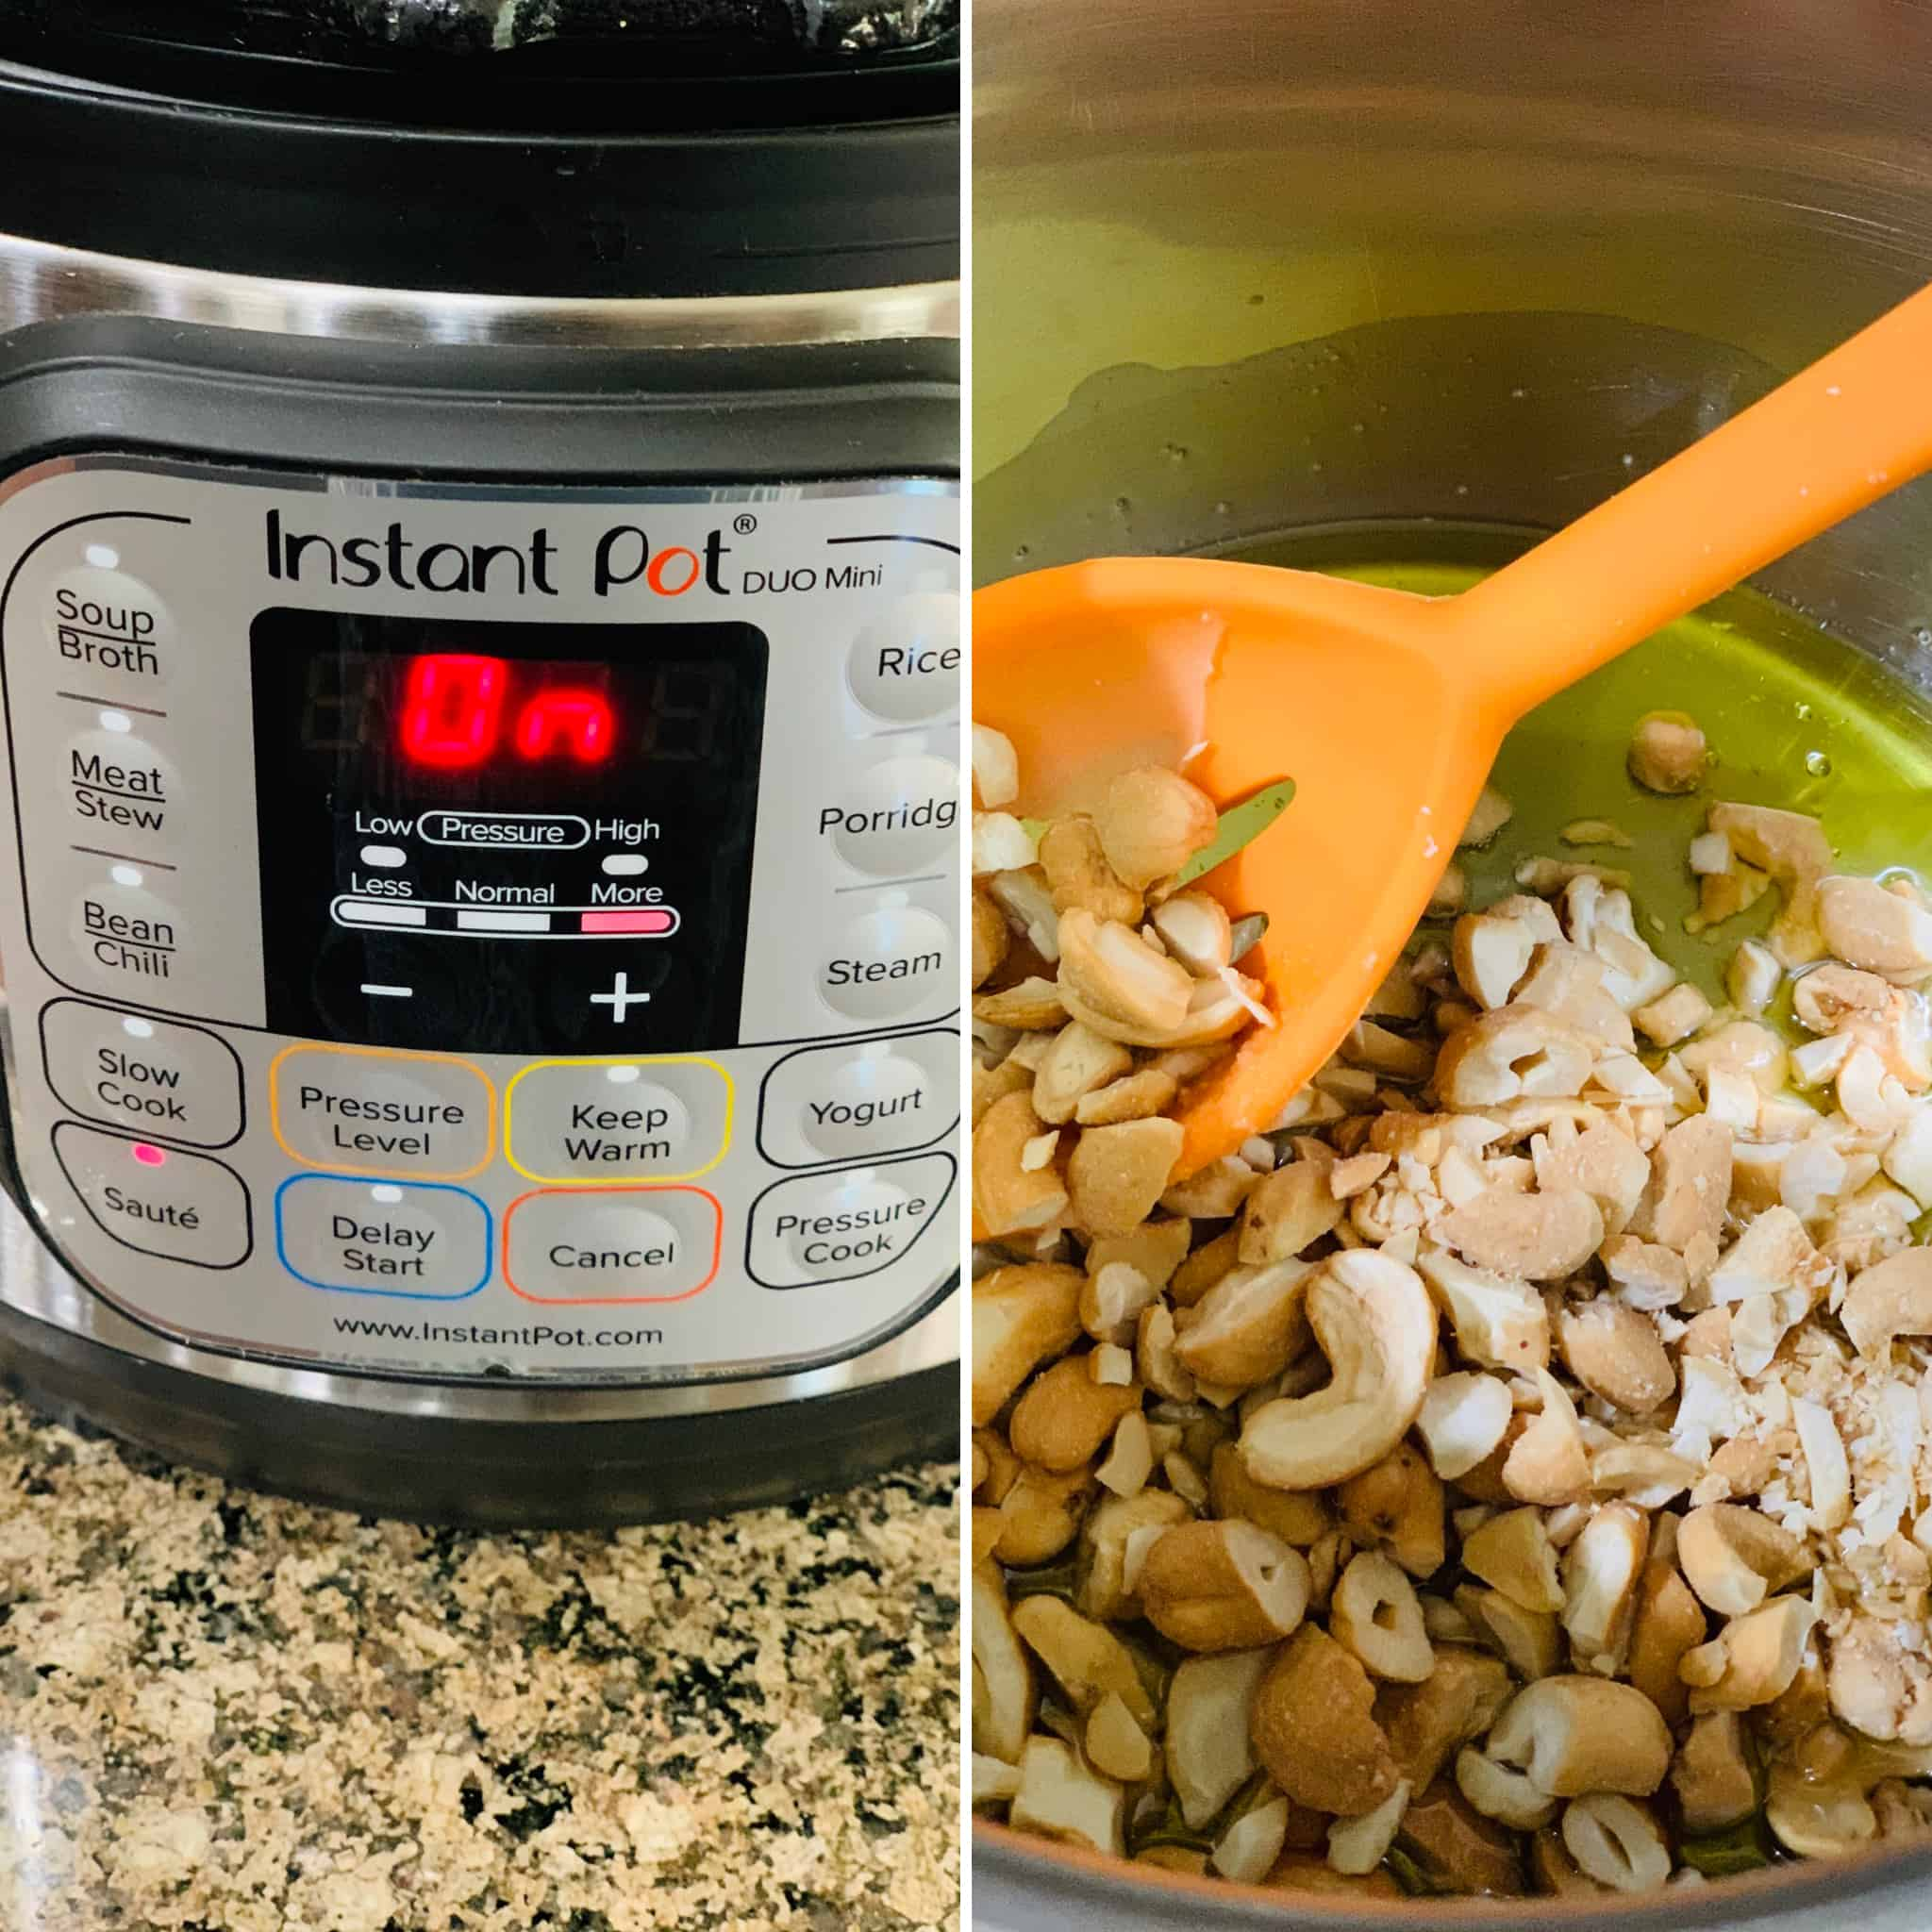 Saute mode on Instant pot and frying the nuts in ghee.